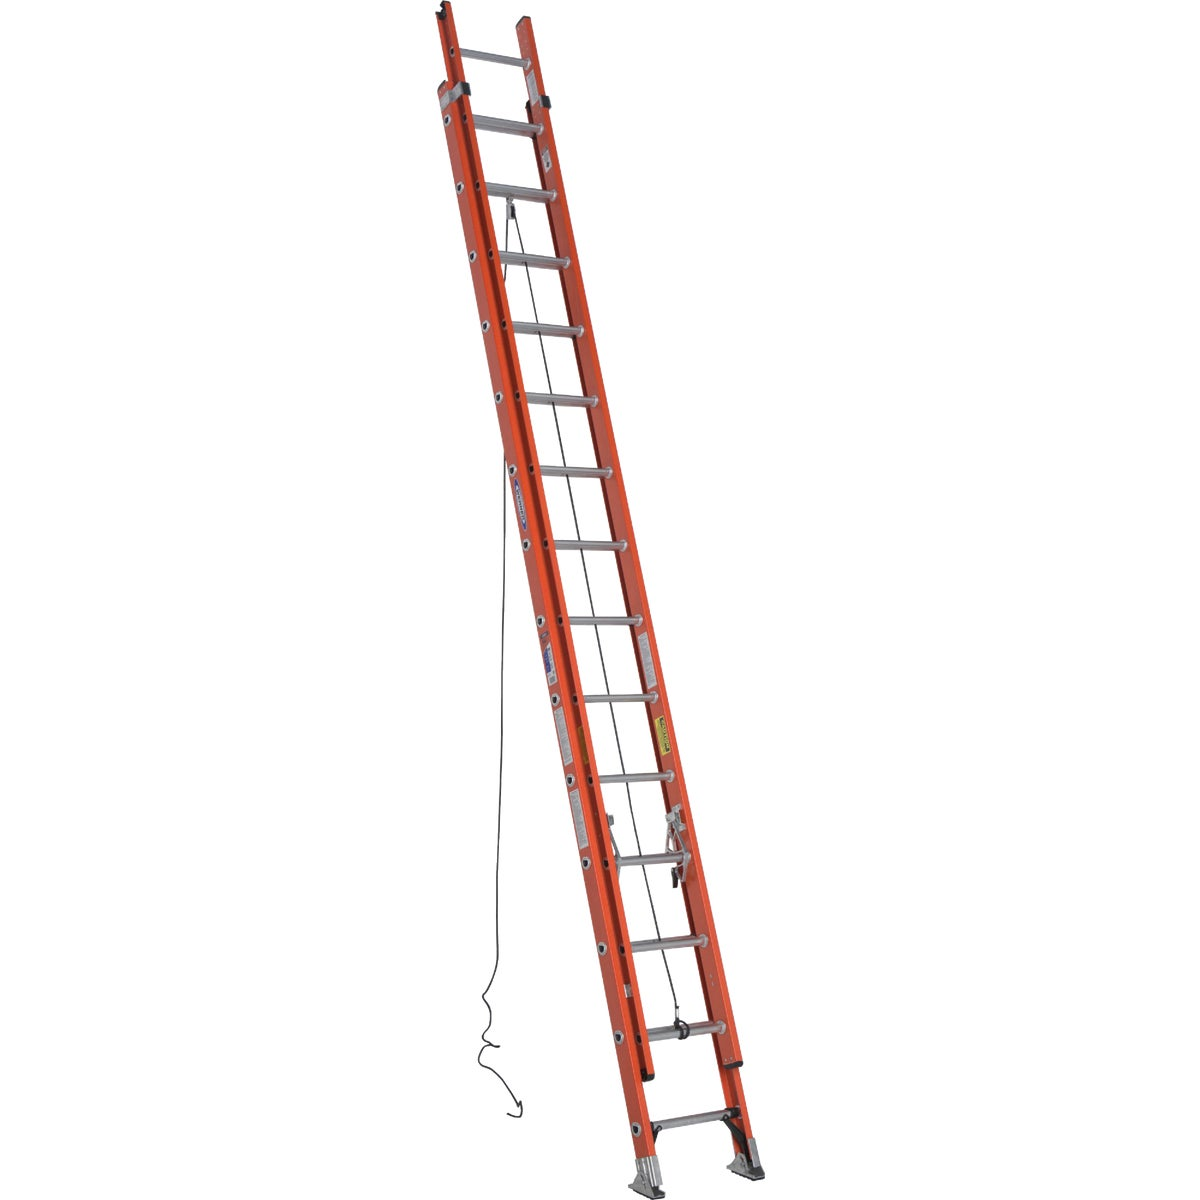 T-1A 28' FBGL EXT LADDER - D6228-2 by Werner Ladder